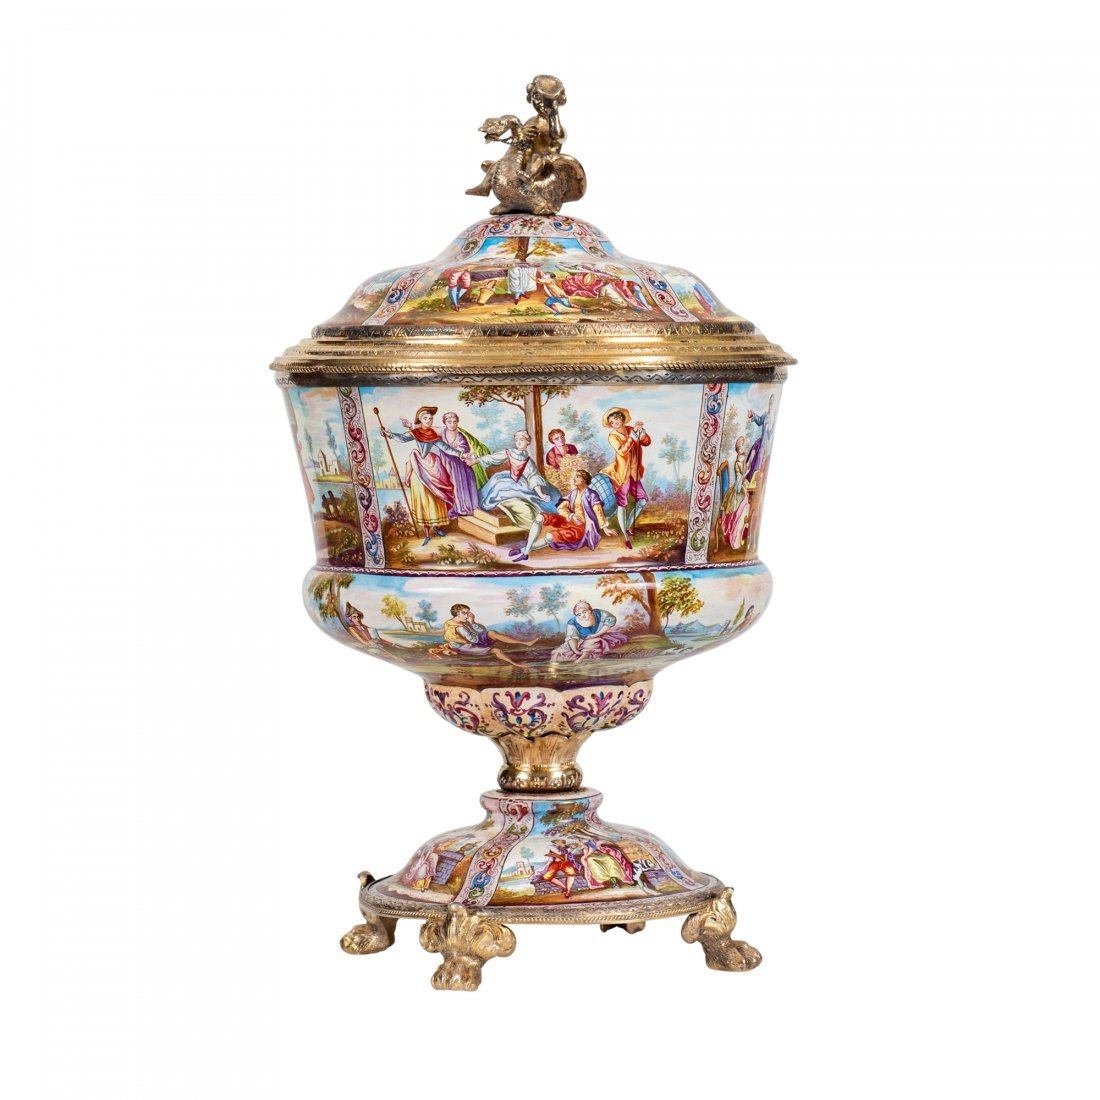 A Viennese Silver-Gilt-Mounted Enameled Cup and Cover